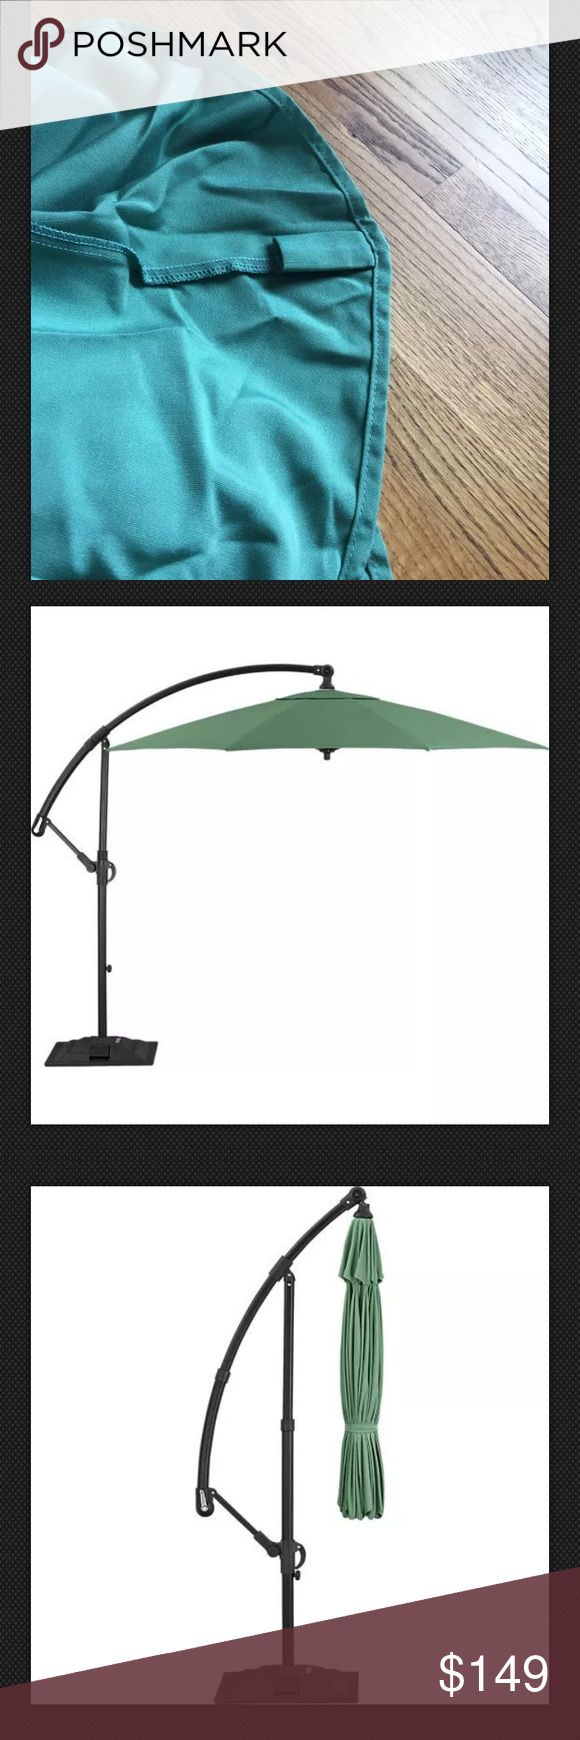 NWT Crate&Barrel 10' Cantilever Sunbrella Umbrella I purchased this from Crate & Barrel and never used it - tag still attached. Retail is $299. This is the umbrella only. Beautiful color green and 10' round. Brand new condition. Item from a pet and smoke free home. H31 Crate&Barrel Other